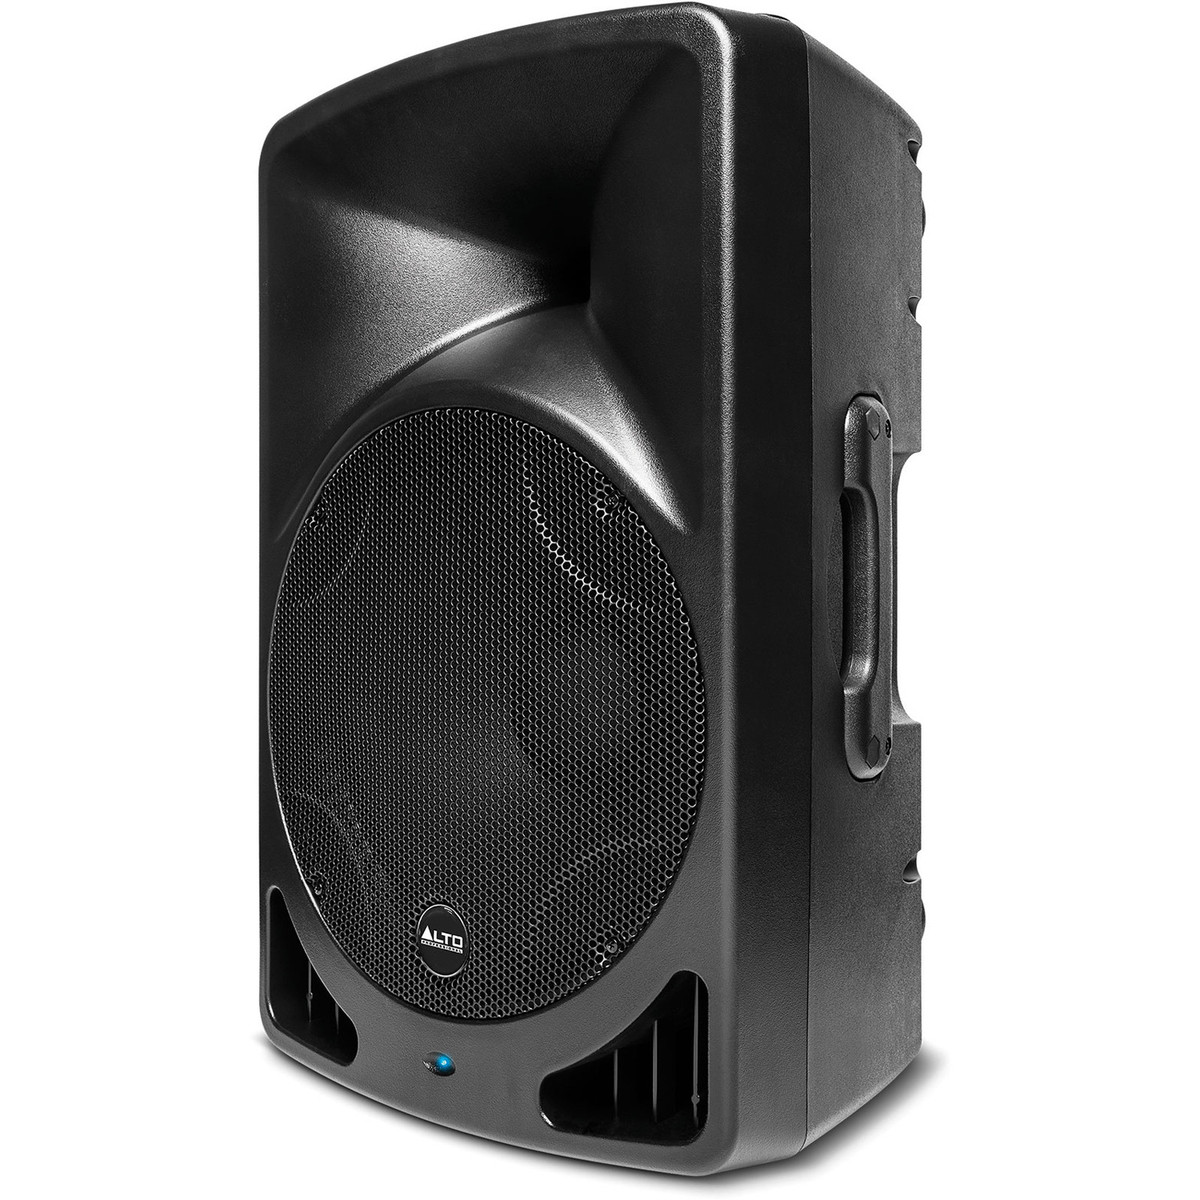 Image of Alto TX1USB 600-Watt Active Speaker with Media Player